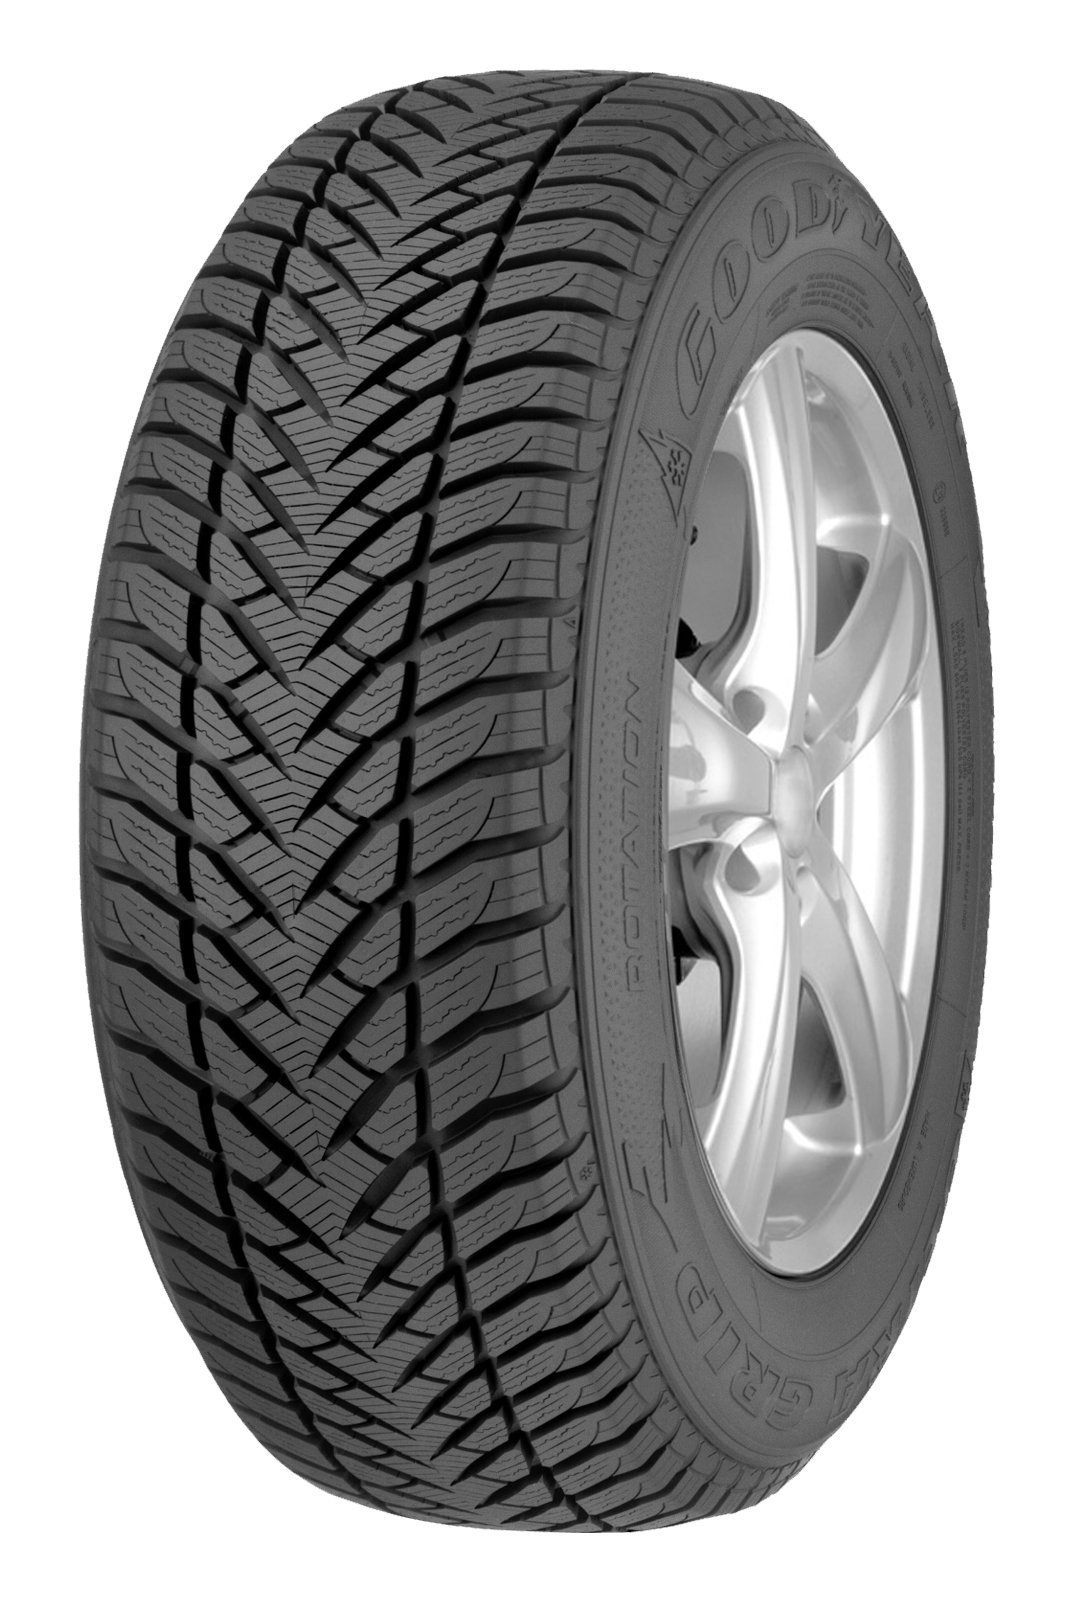 GOODYEAR Ultra Grip + SUV 255/55R19XL 111H (Quantity of 1) by Goodyear (Image #1)